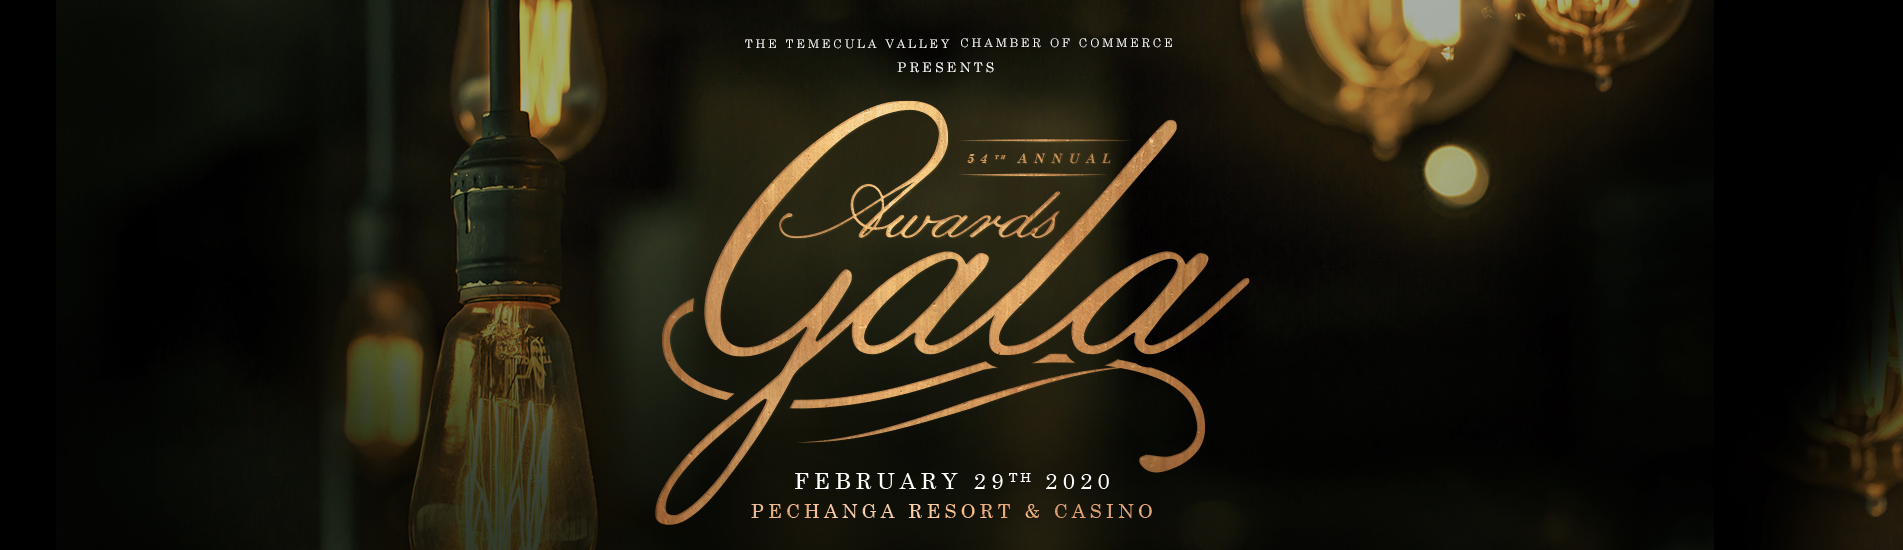 51st Annual TVCC Awards Gala - Save The Date